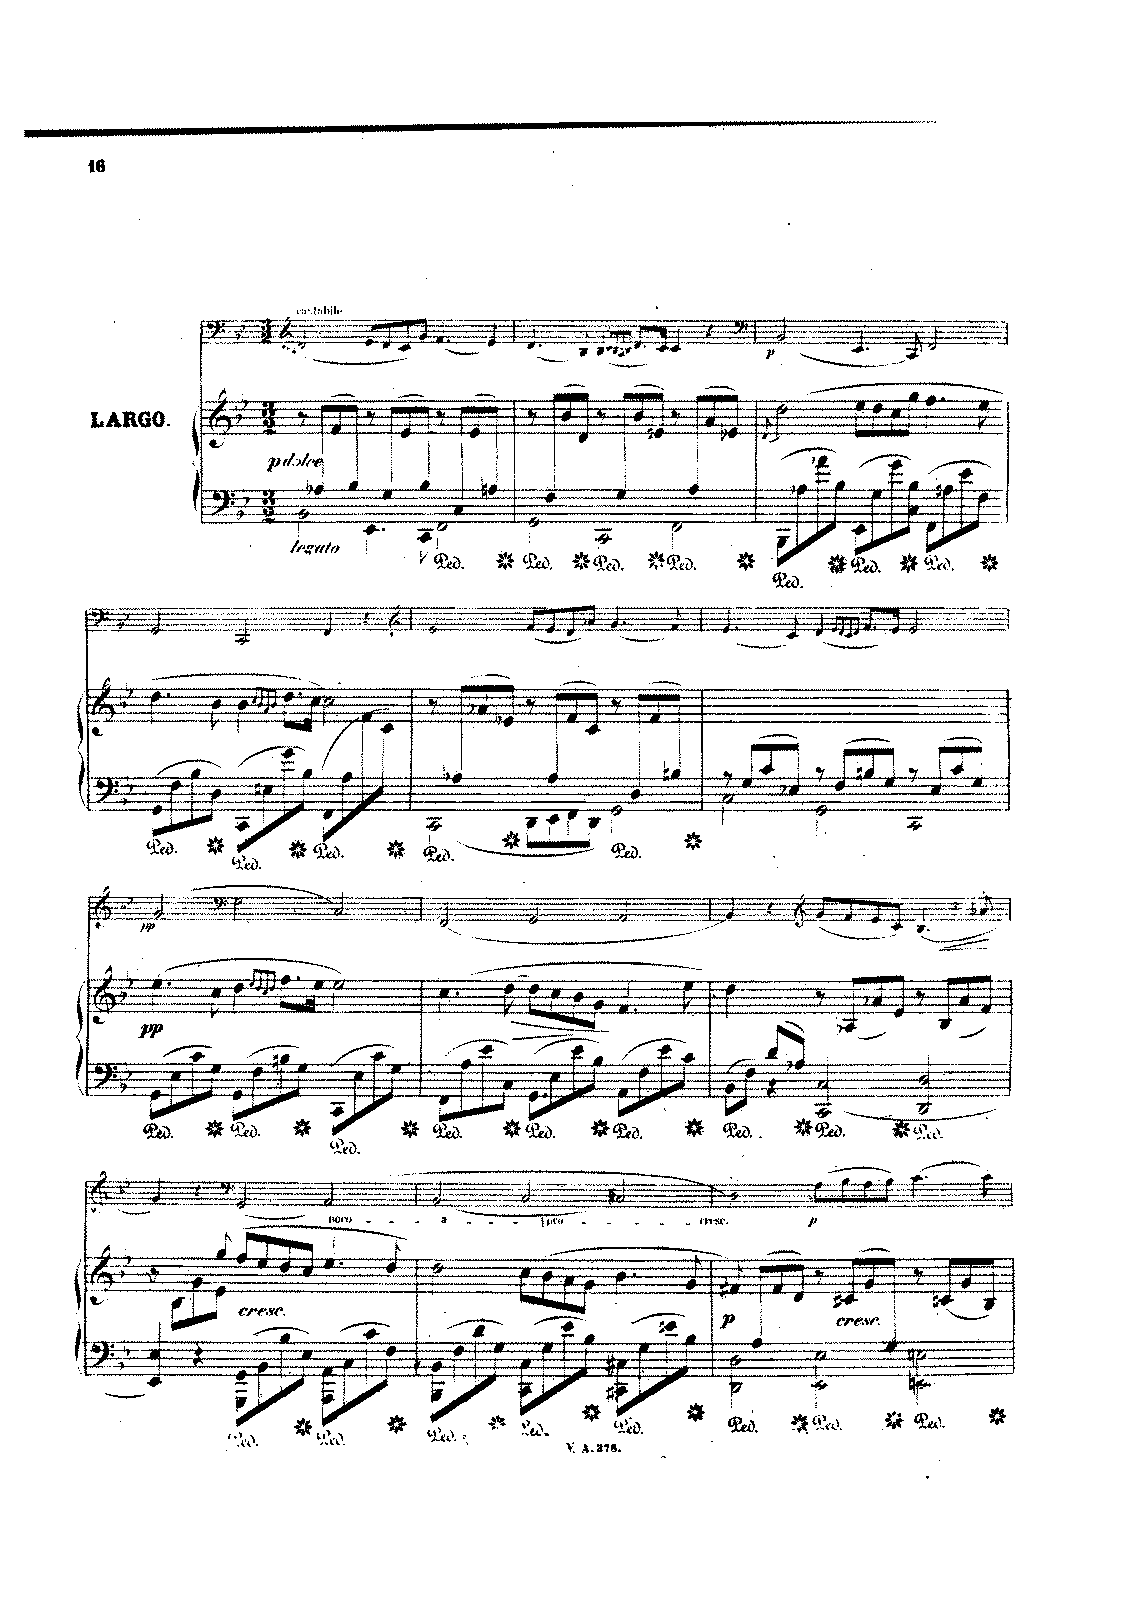 PMLP05808-Chopin -Largo from Sonata Op65 for Cello and Piano score.pdf